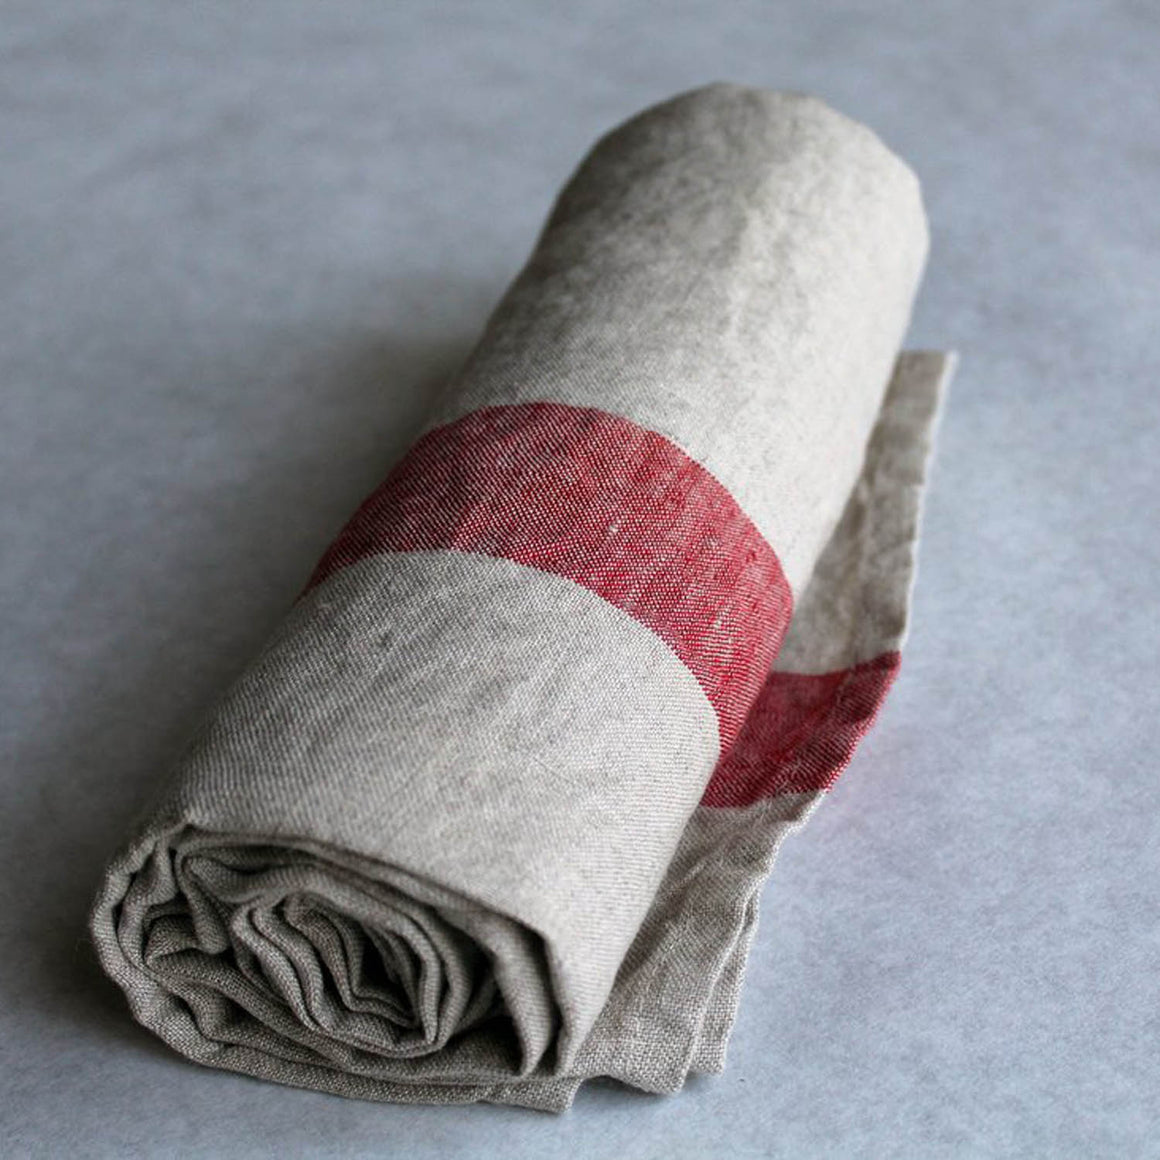 Travelweight Linen Bath Towel - Red